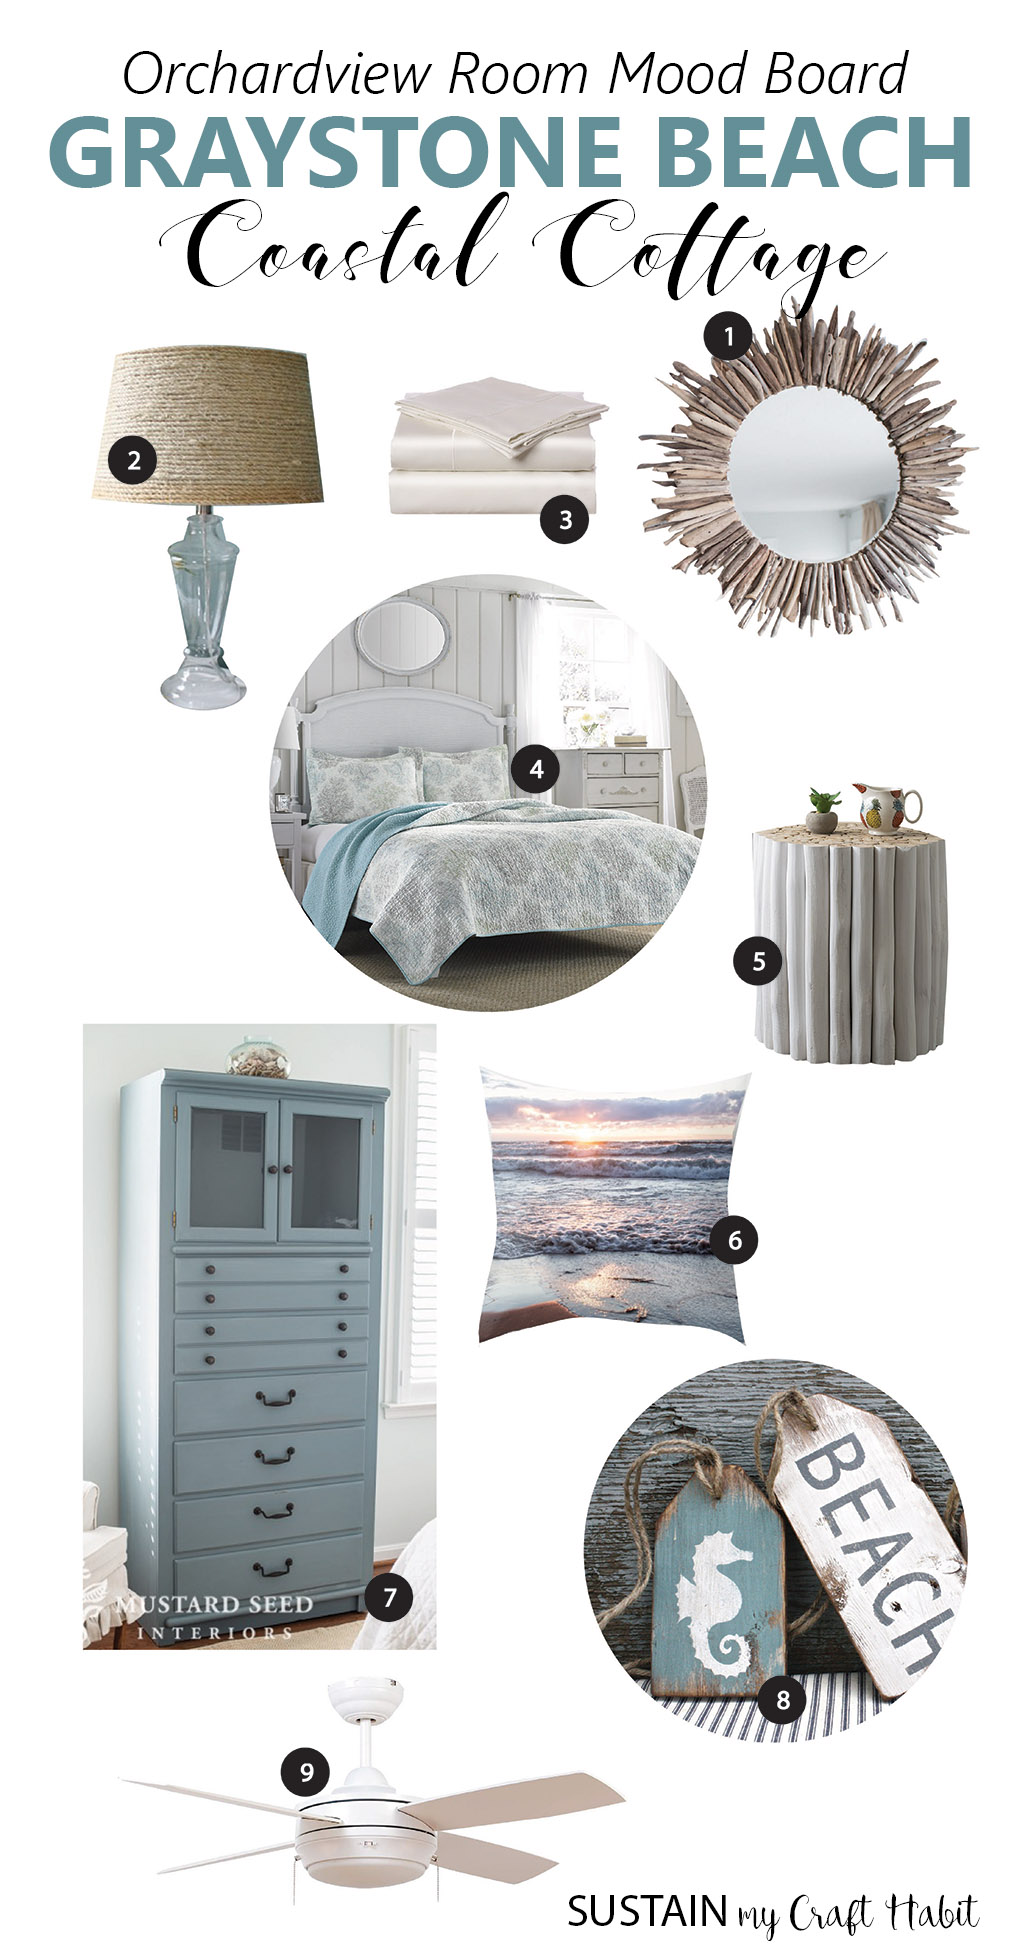 Design board for a beach themed bedroom. Inspiring coastal cottage bedroom decor ideas.